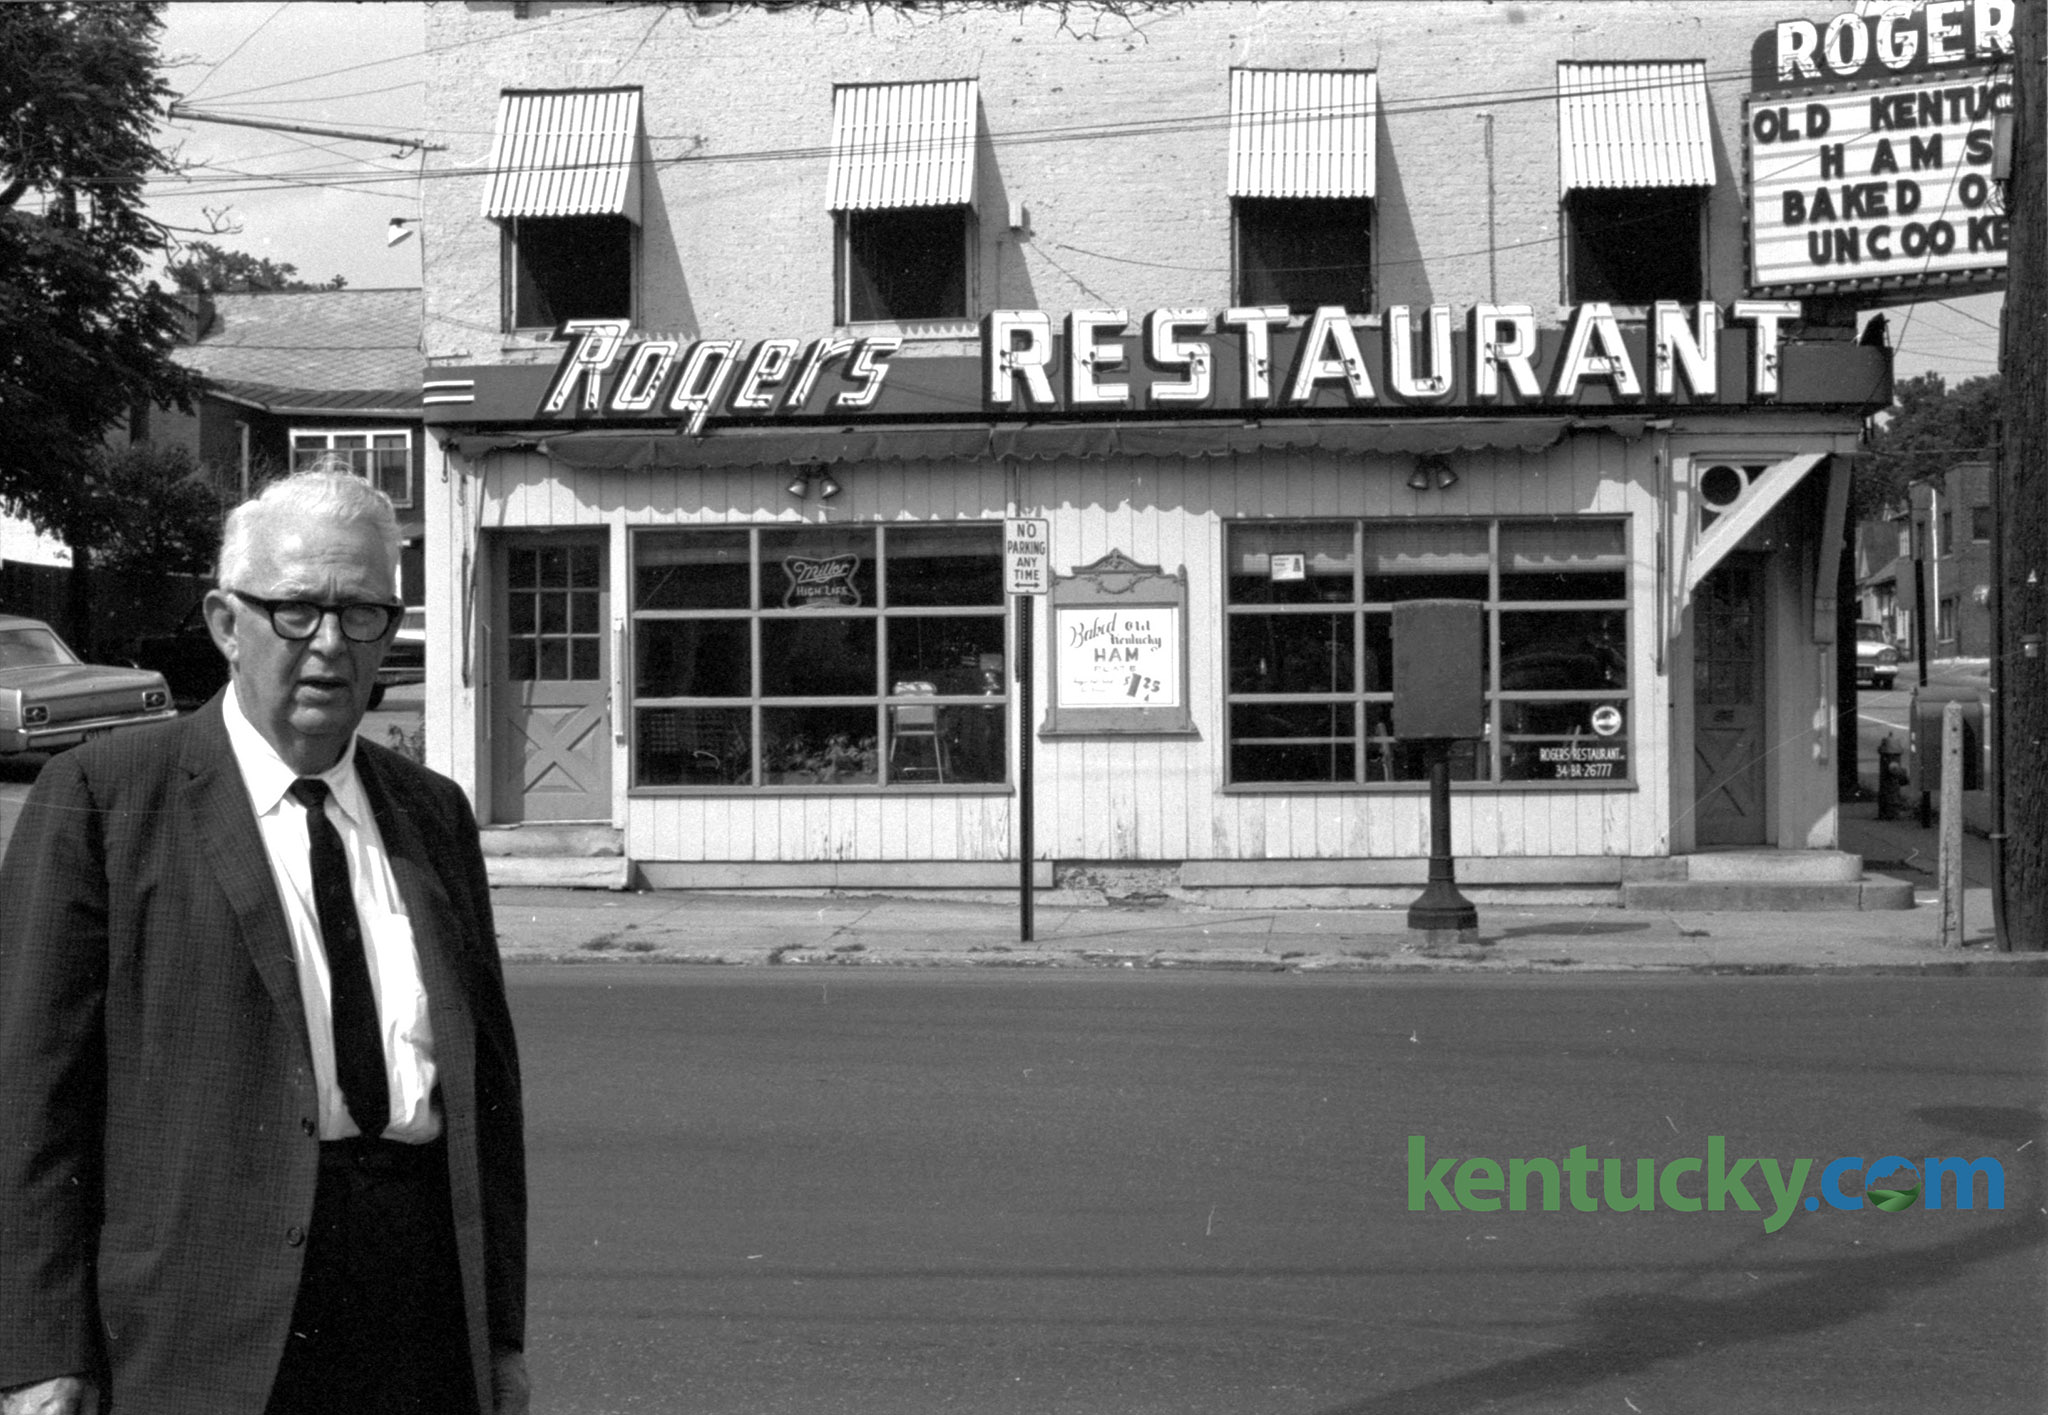 Rogers Restaurant 1965 Kentucky Photo Archive